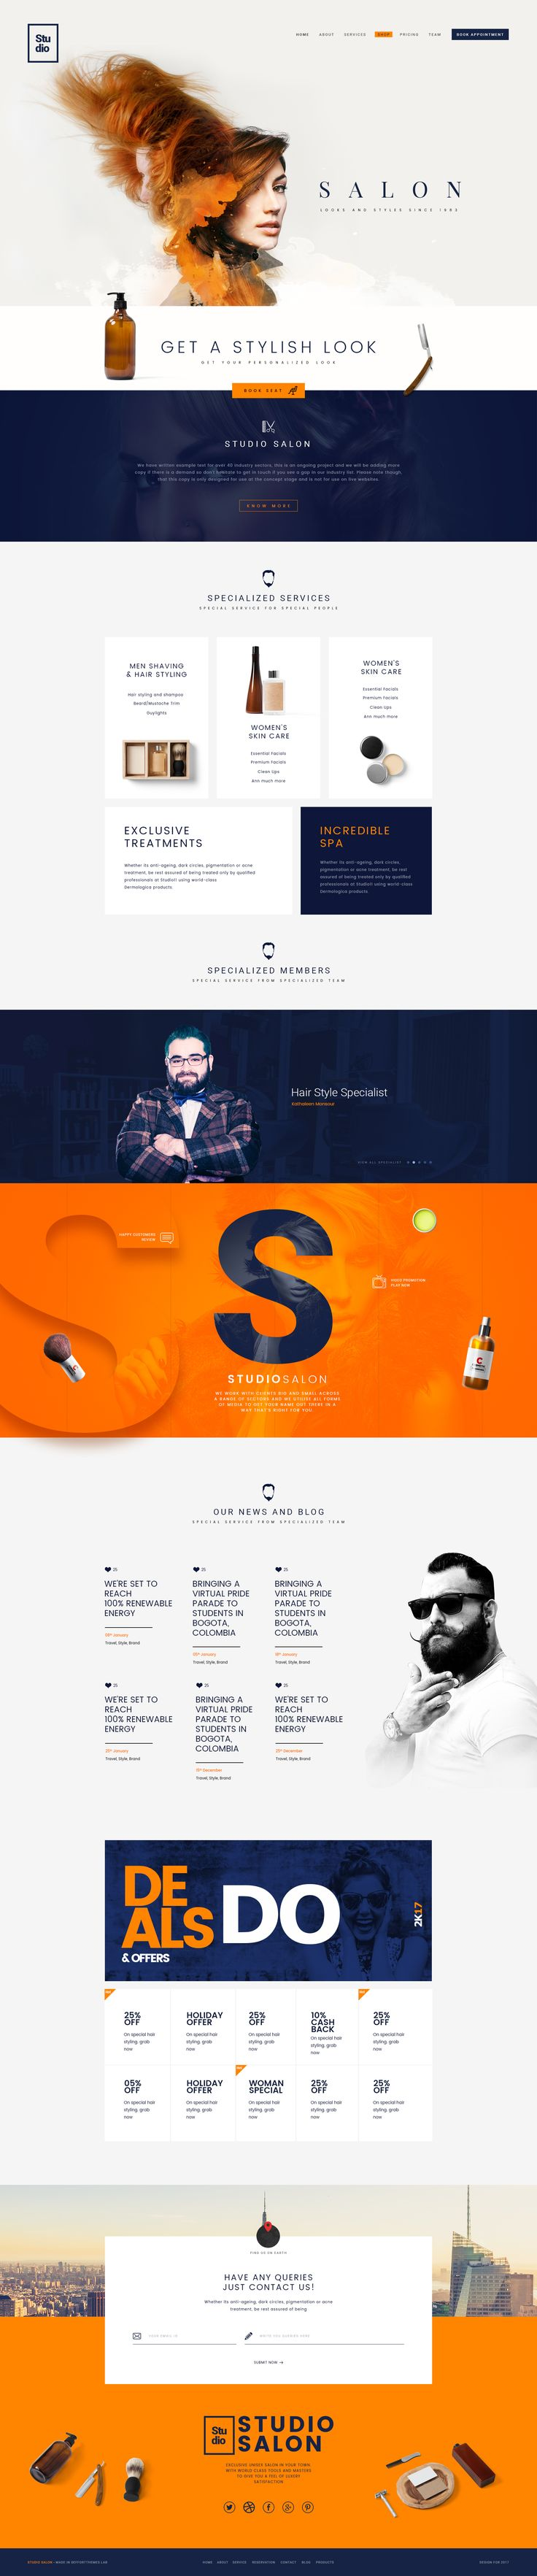 Studio Salon | A Modern Salon And Business Psd Template #salon #shop #style • Download ➝ https://themeforest.net/item/studio-salon-a-modern-salon-and-business-psd-template/19734582?ref=pxcr